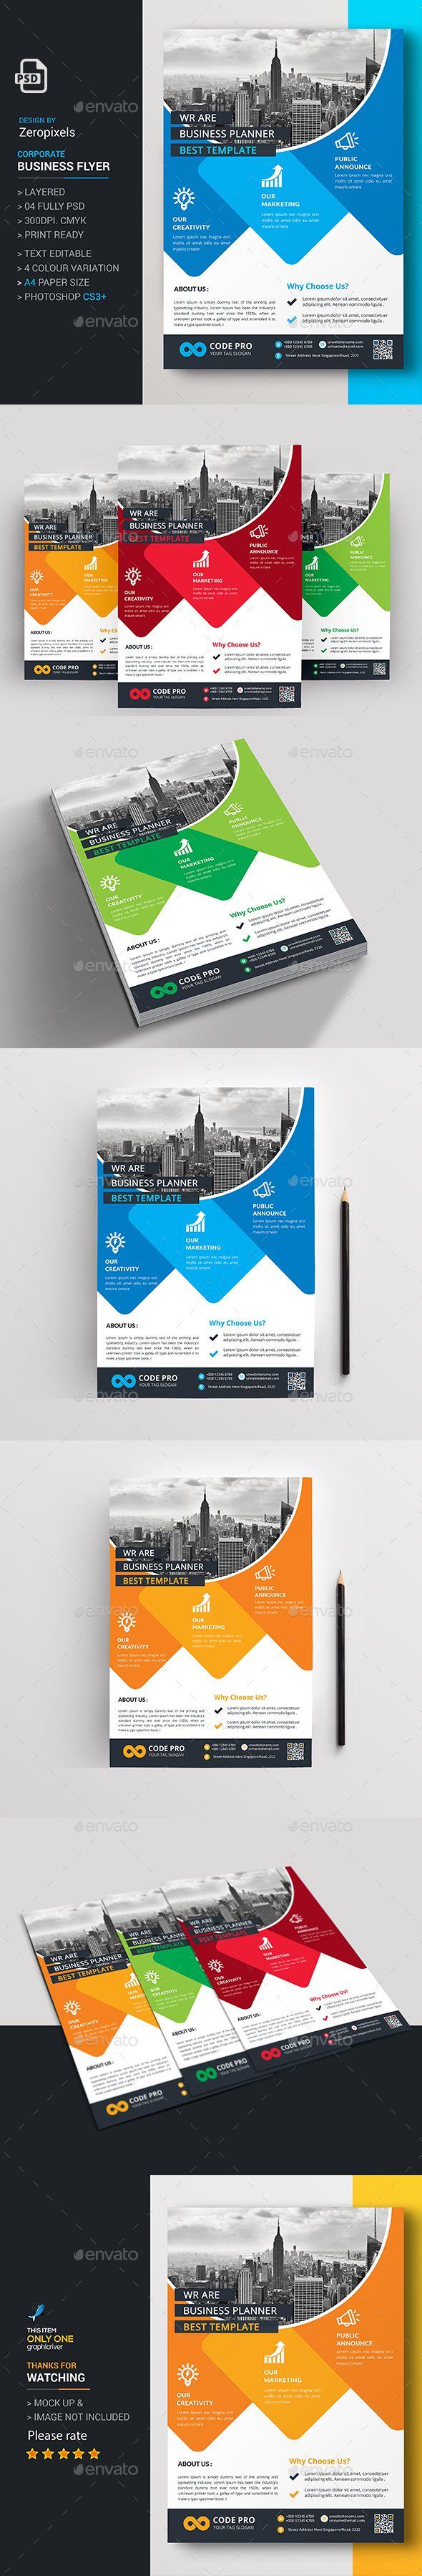 Corporate Business Flyer Template PSD. Download here: http://graphicriver.net/item/corporate-business-flyer/16413343?ref=ksioks